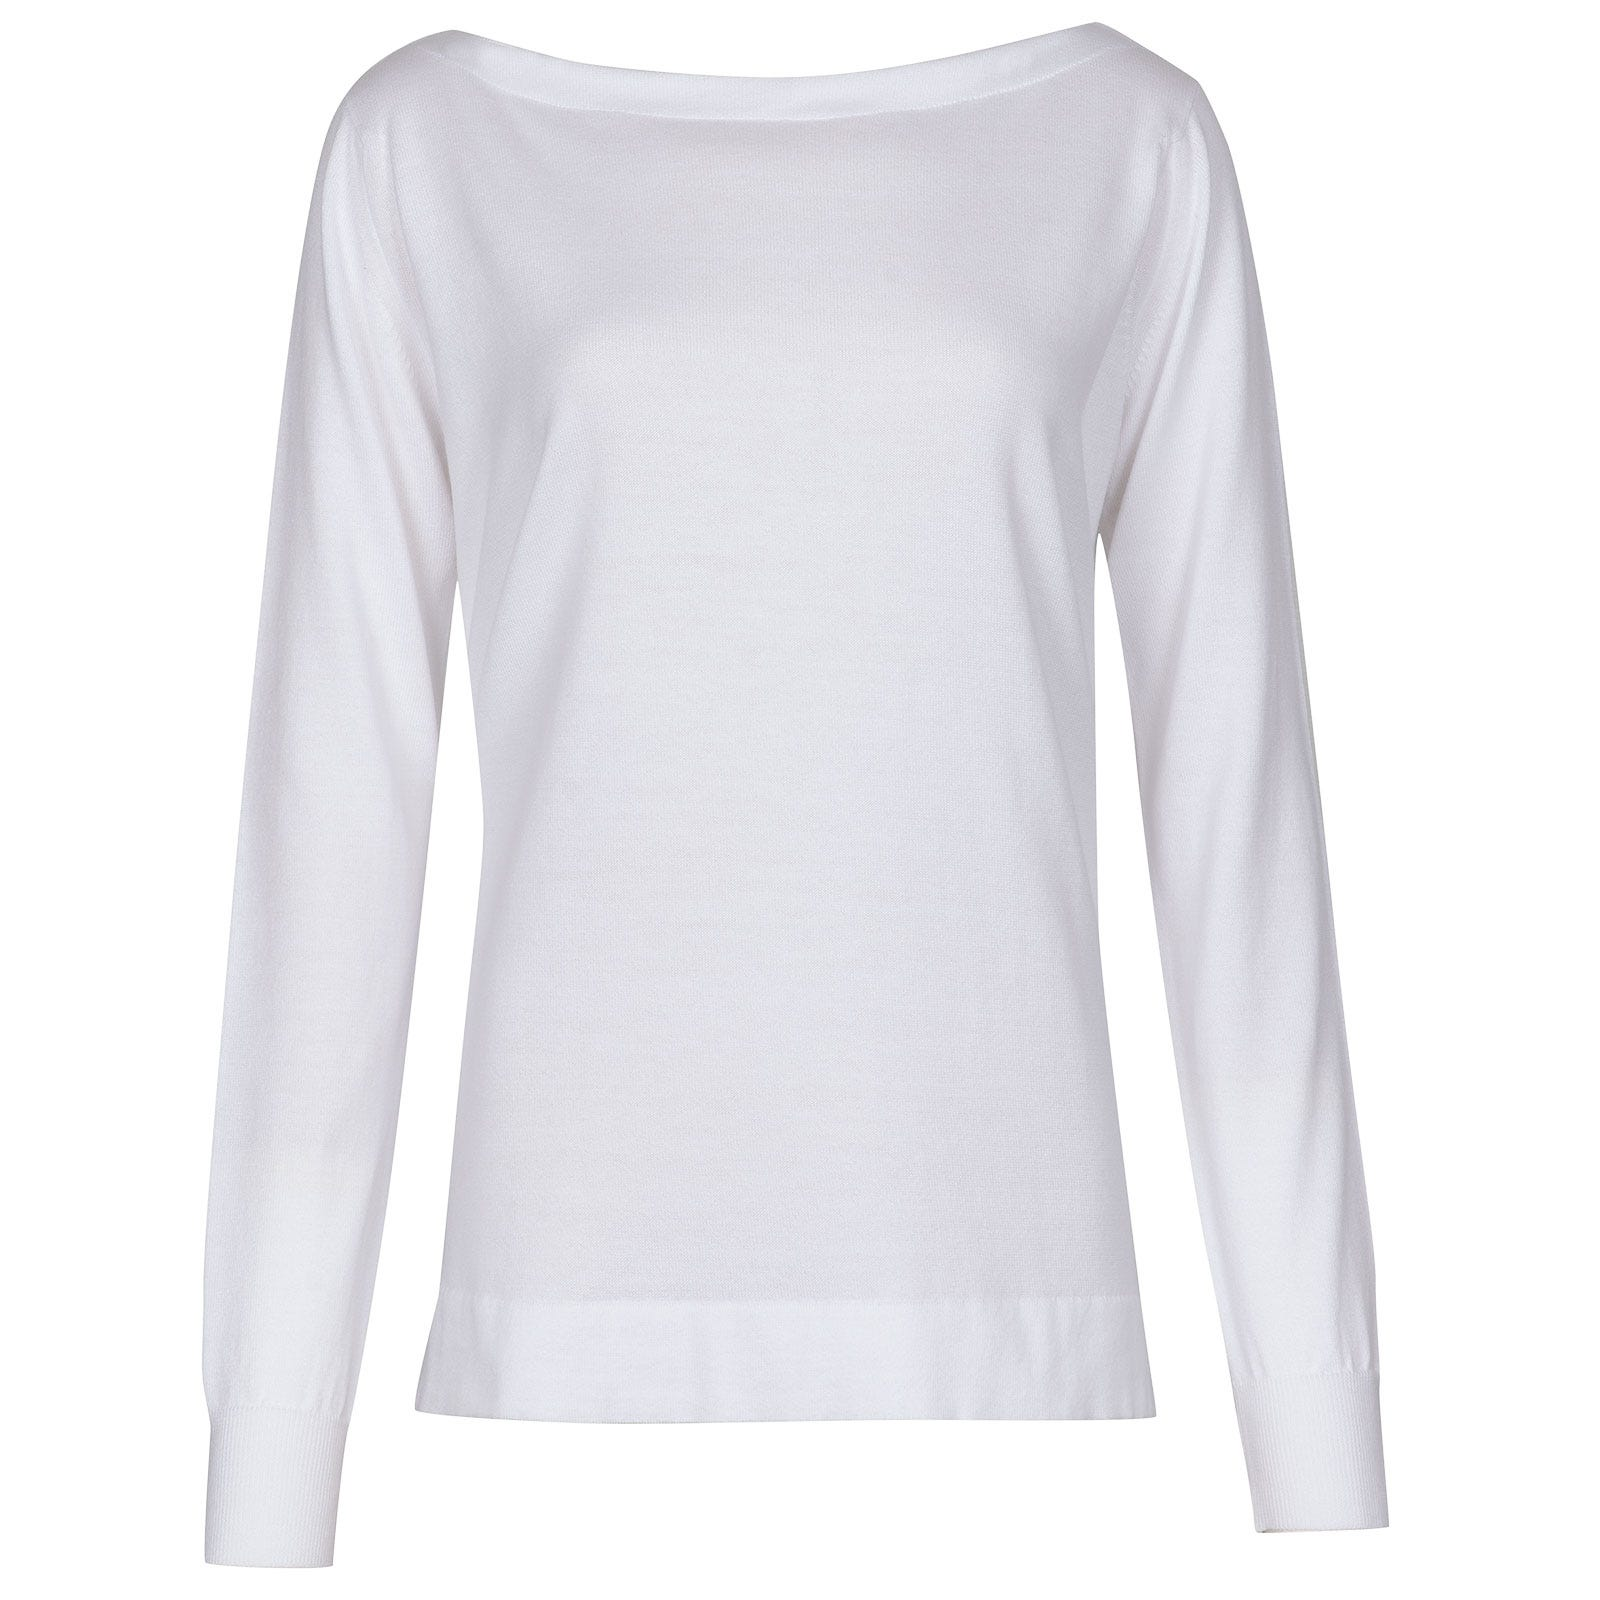 John Smedley Roxton Merino Wool Sweater in White-S